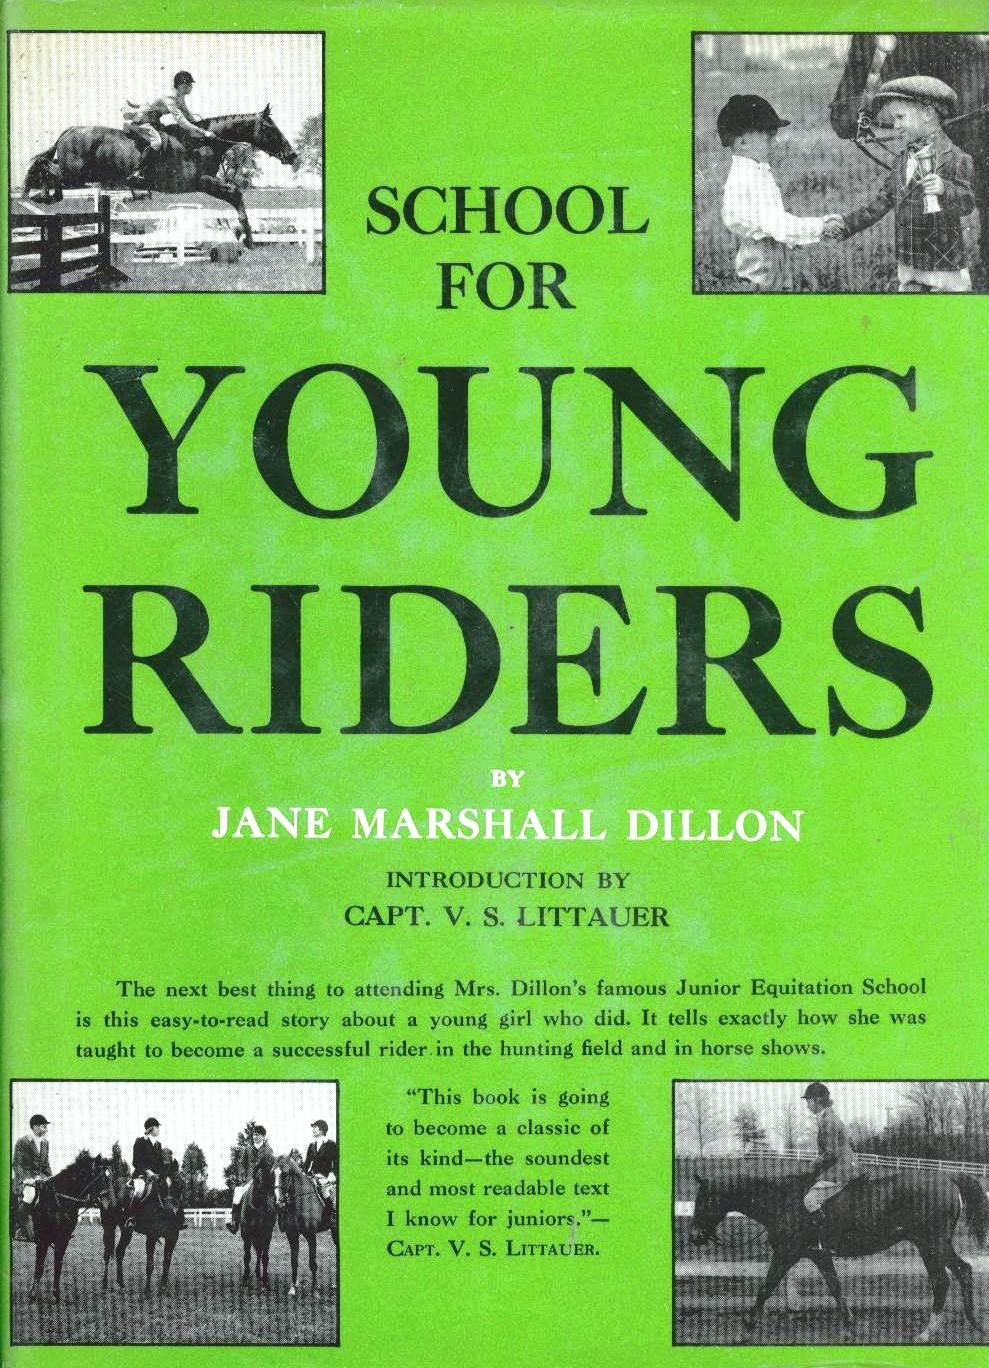 School for Young Riders